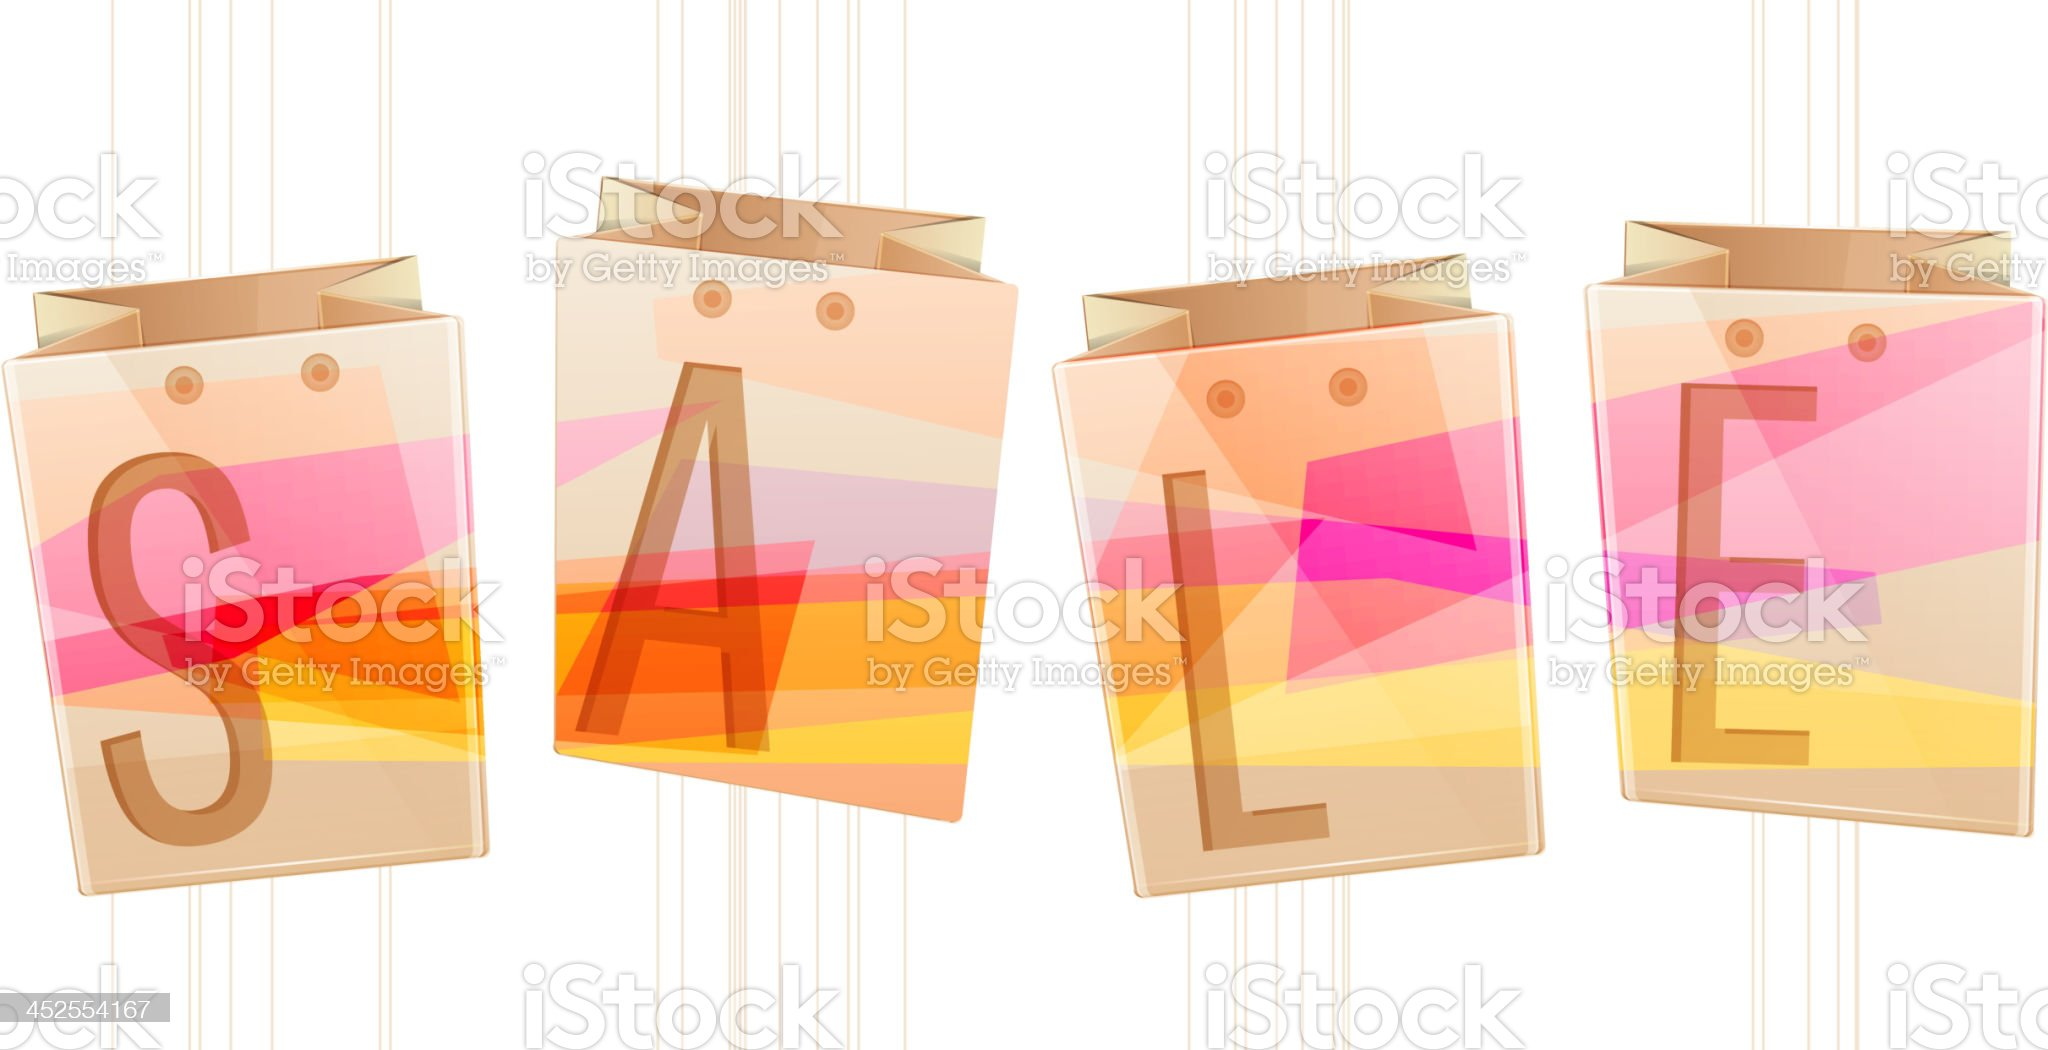 Sale Icon royalty-free stock vector art